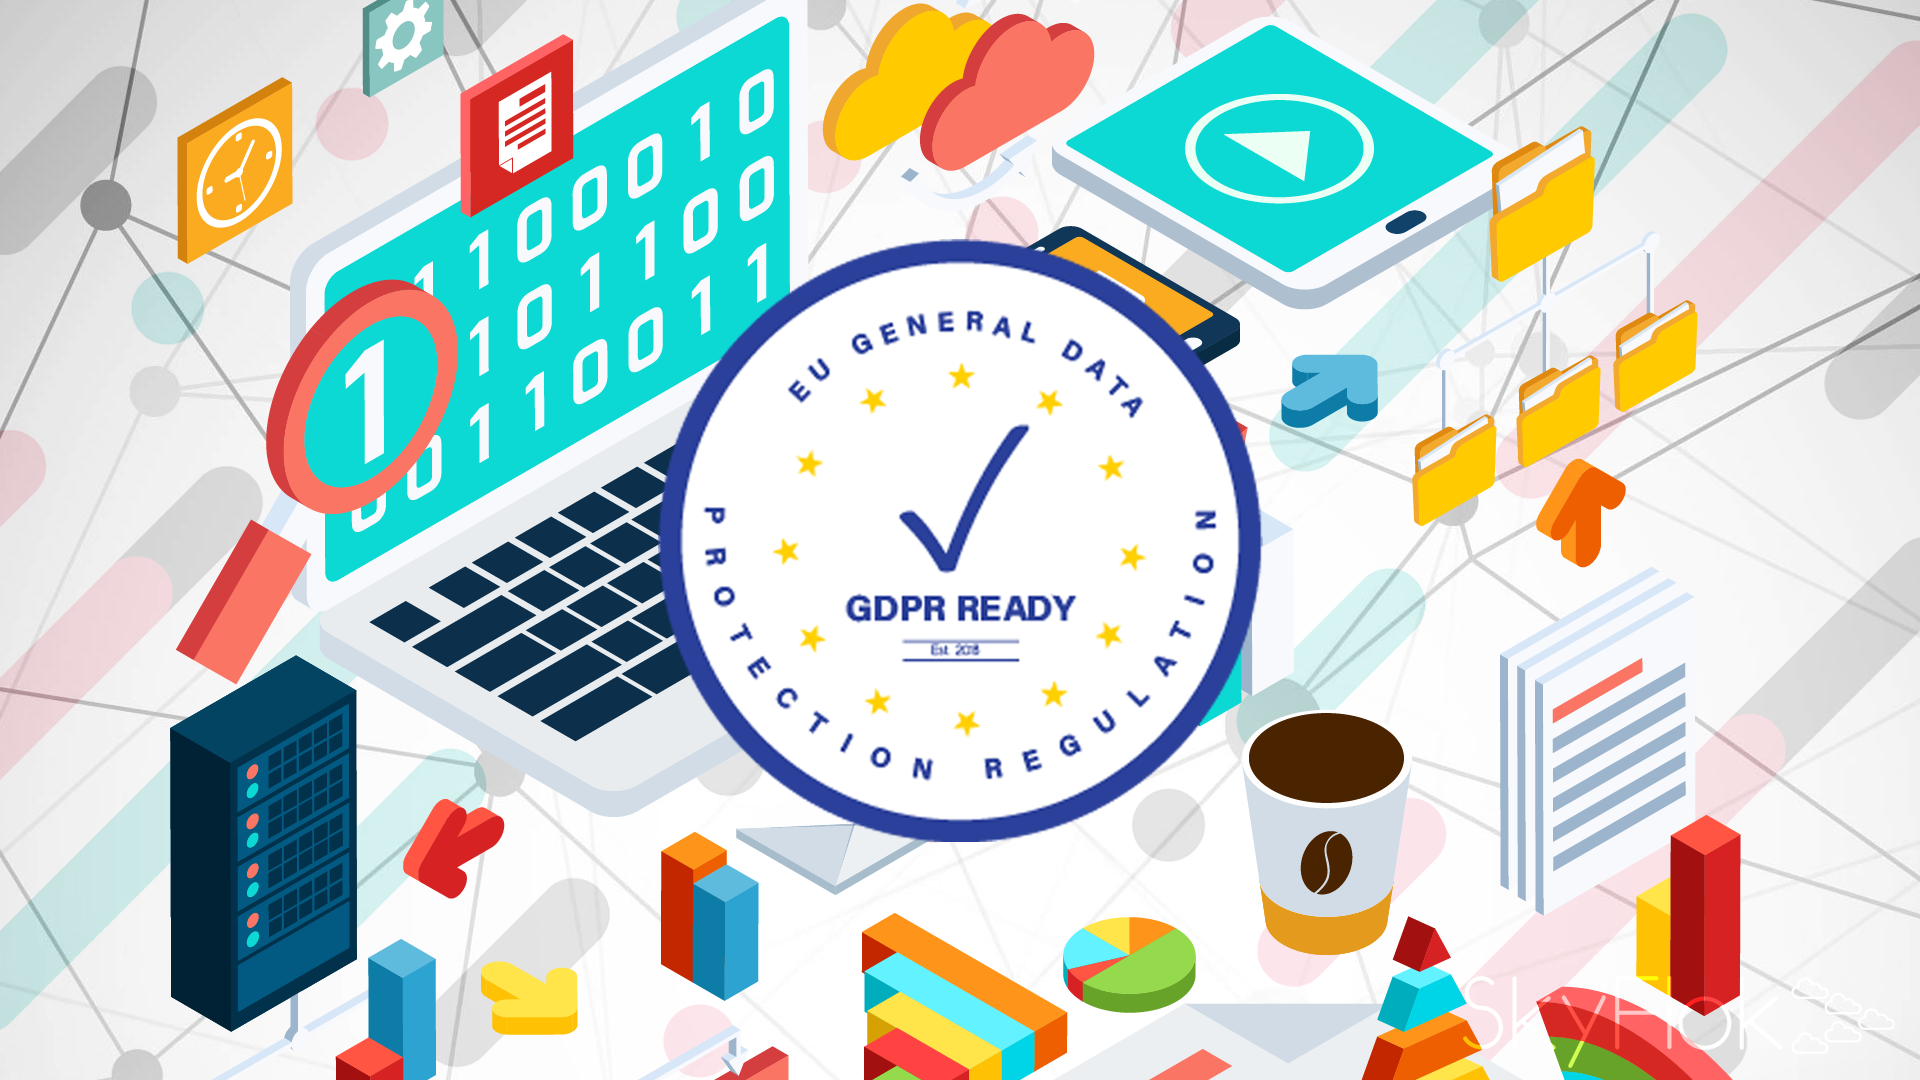 VMblog's Expert Interviews: Commvault Talks World Backup Day and GDPR